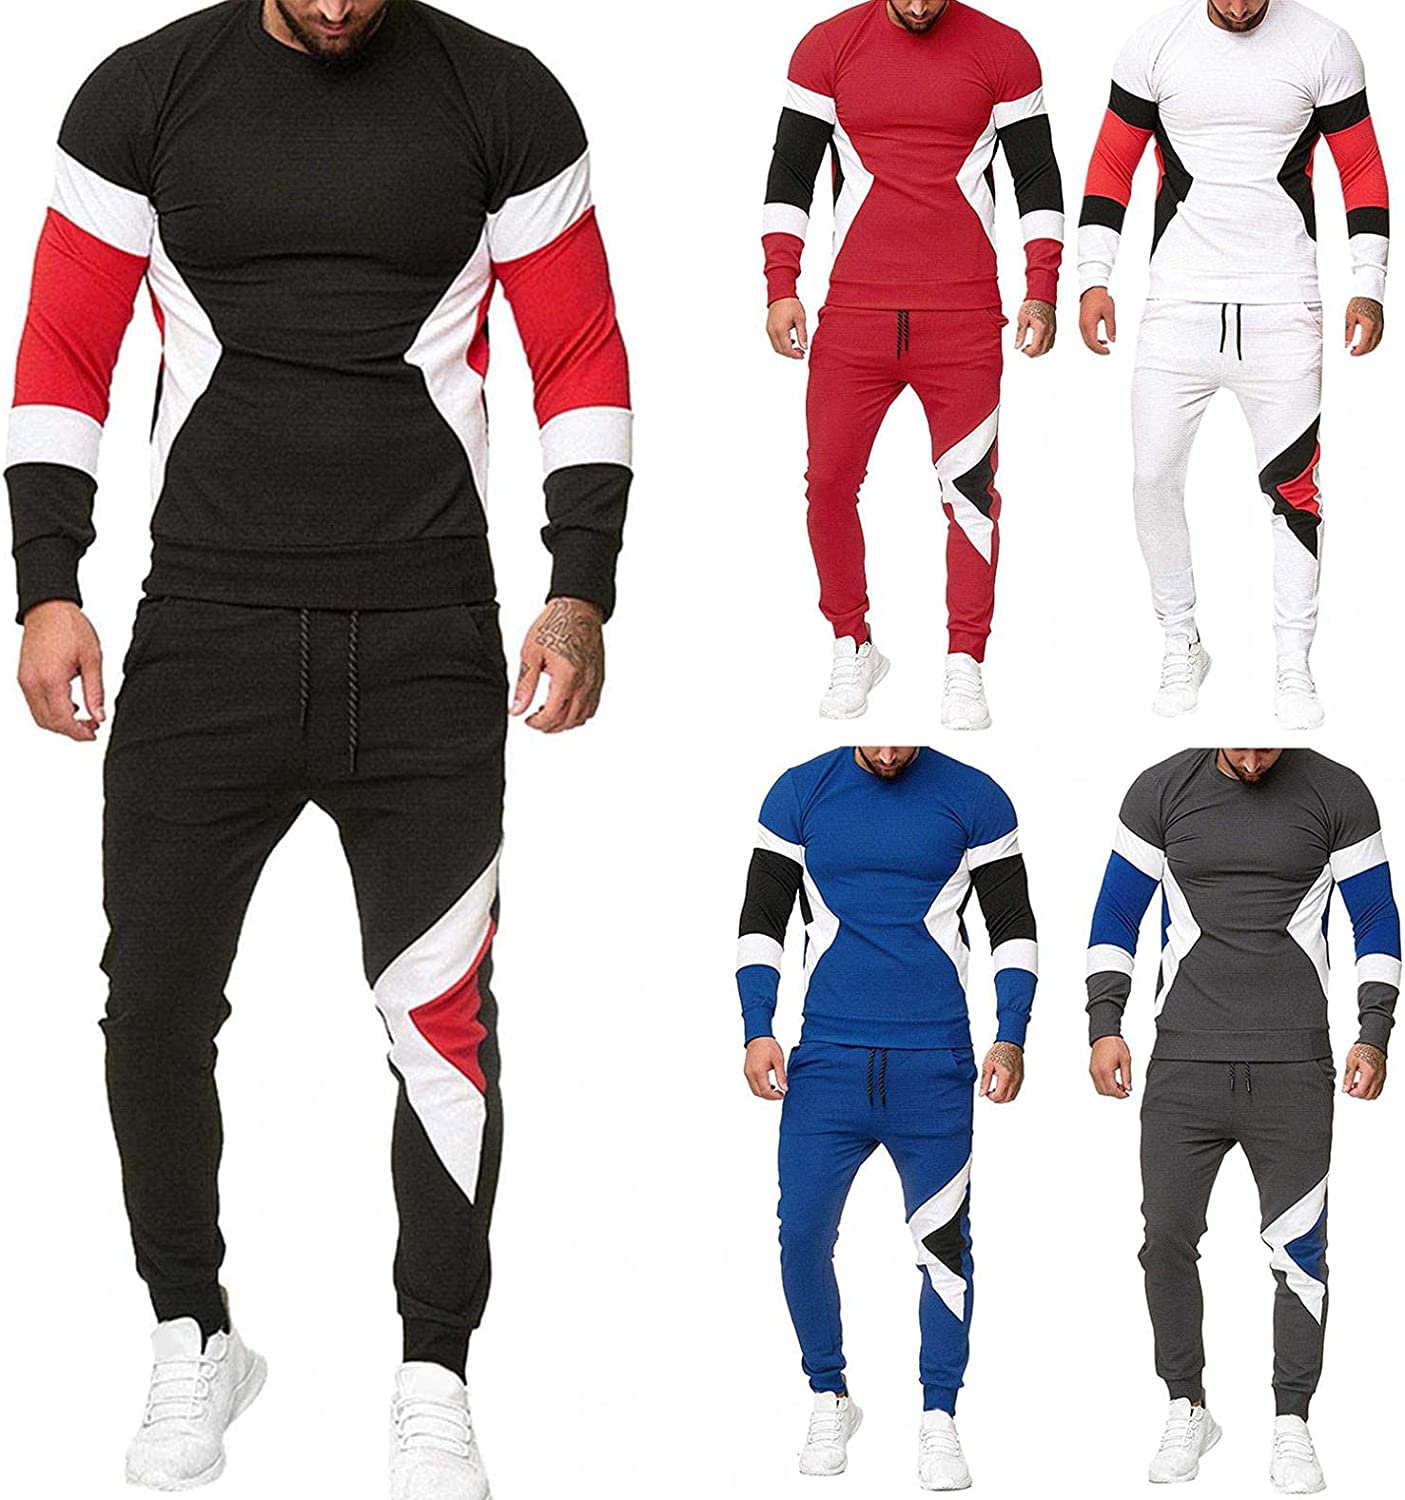 WoCoo Mens 2 Piece Sport Sets Long Sleeve Crewneck Pullover Tops & Pants Tracksuits Running Jogging Sweatsuits